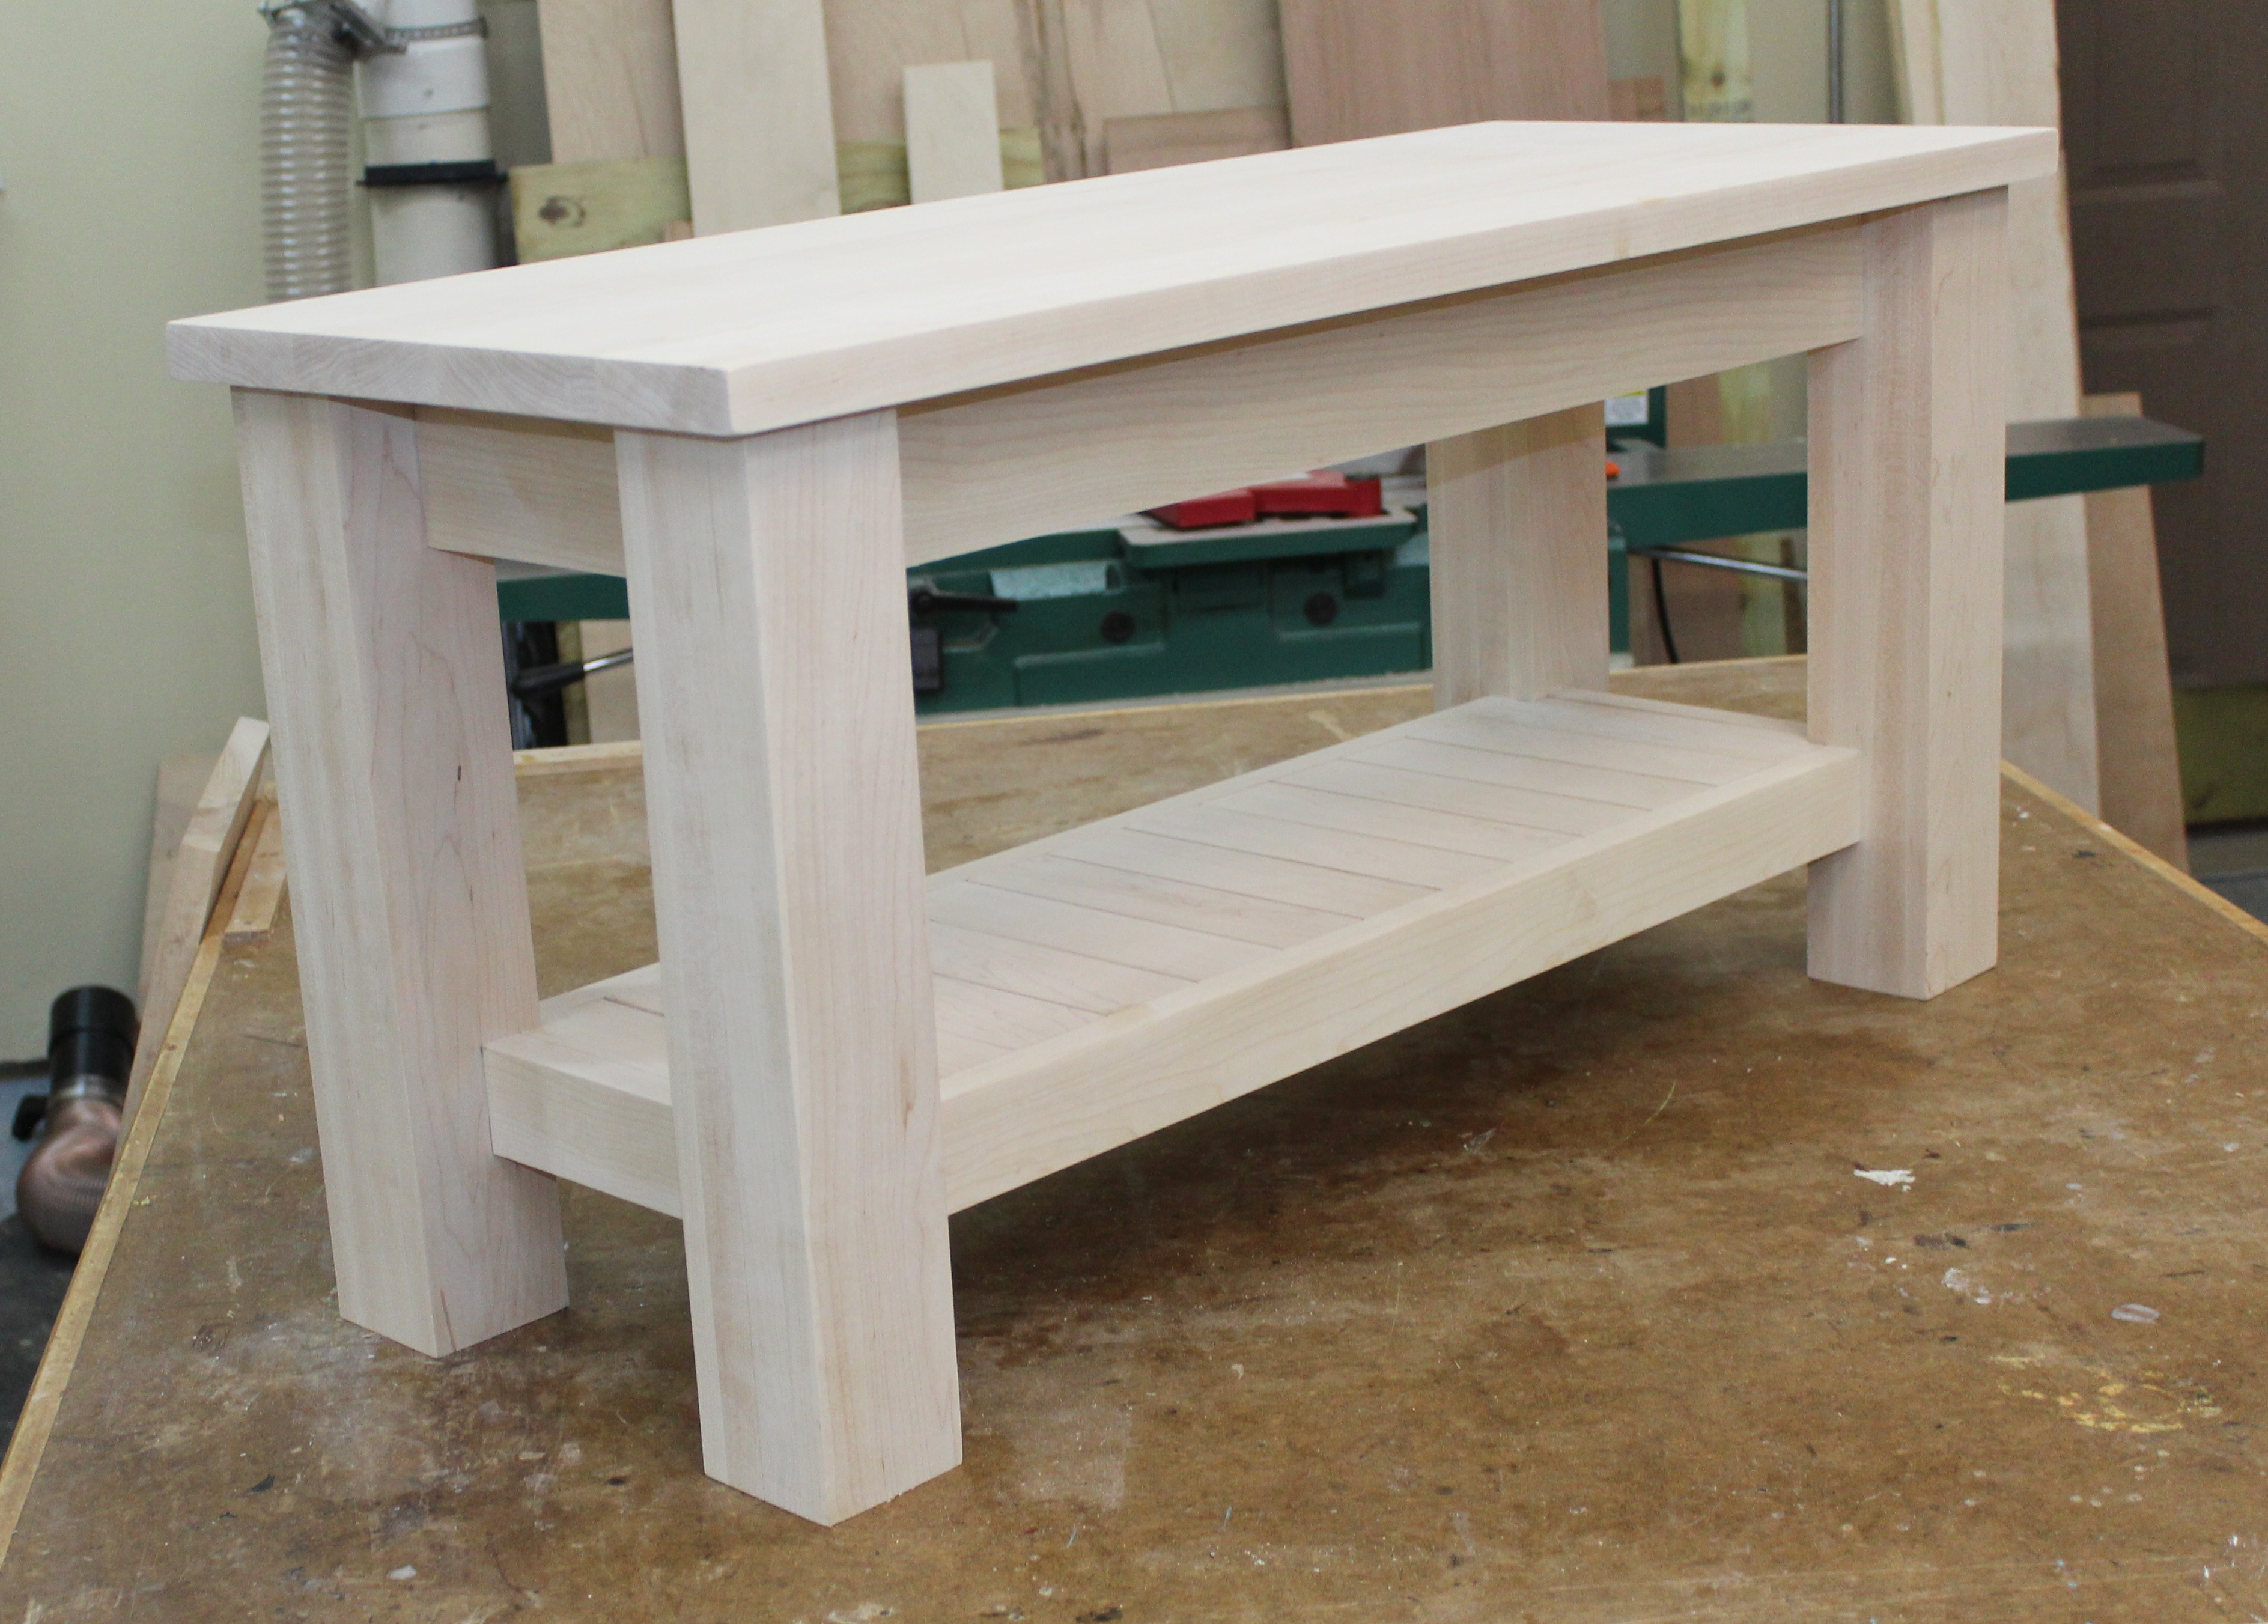 Woodworking Projects Plans: 10 Beautiful Home Woodworking Projects